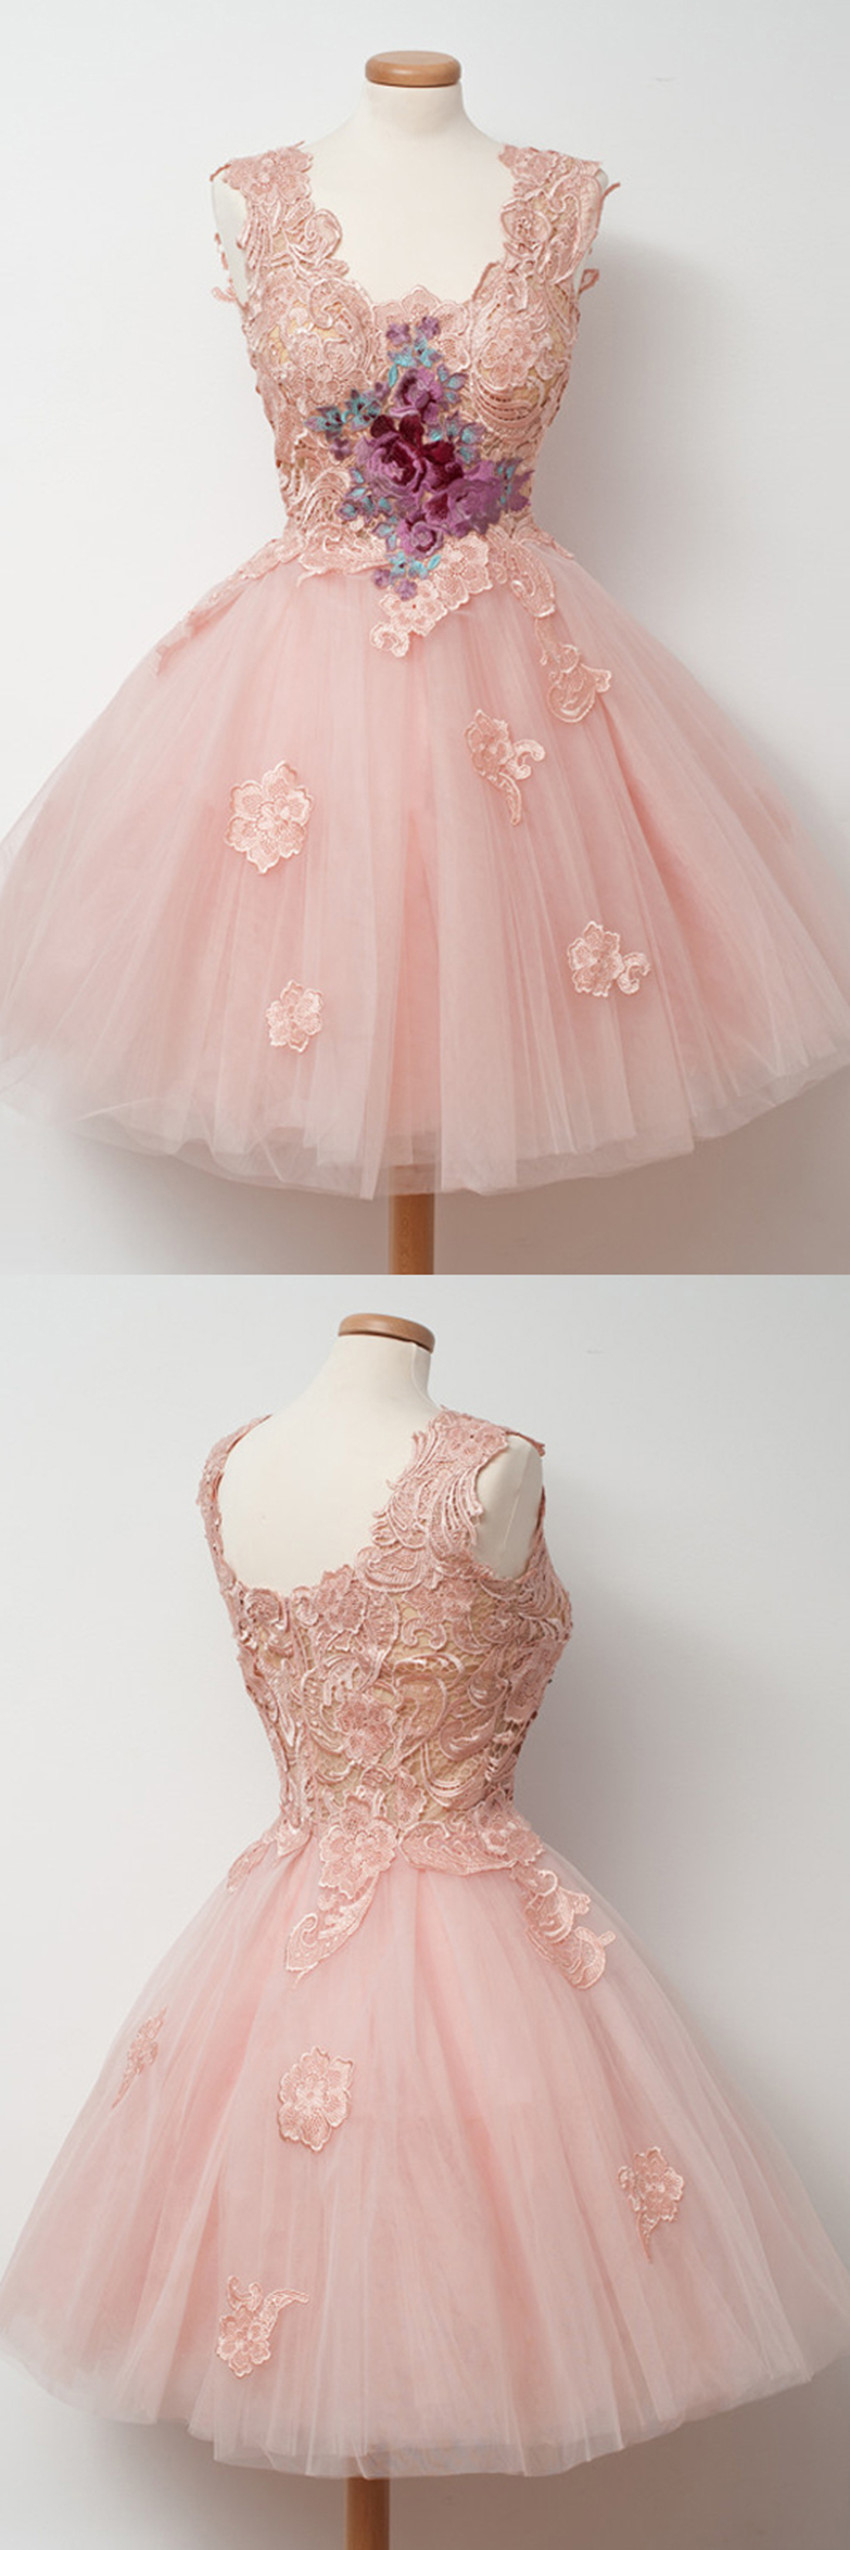 Cute Square Knee-Length Ball Gown Pink Homecoming Dress with ...